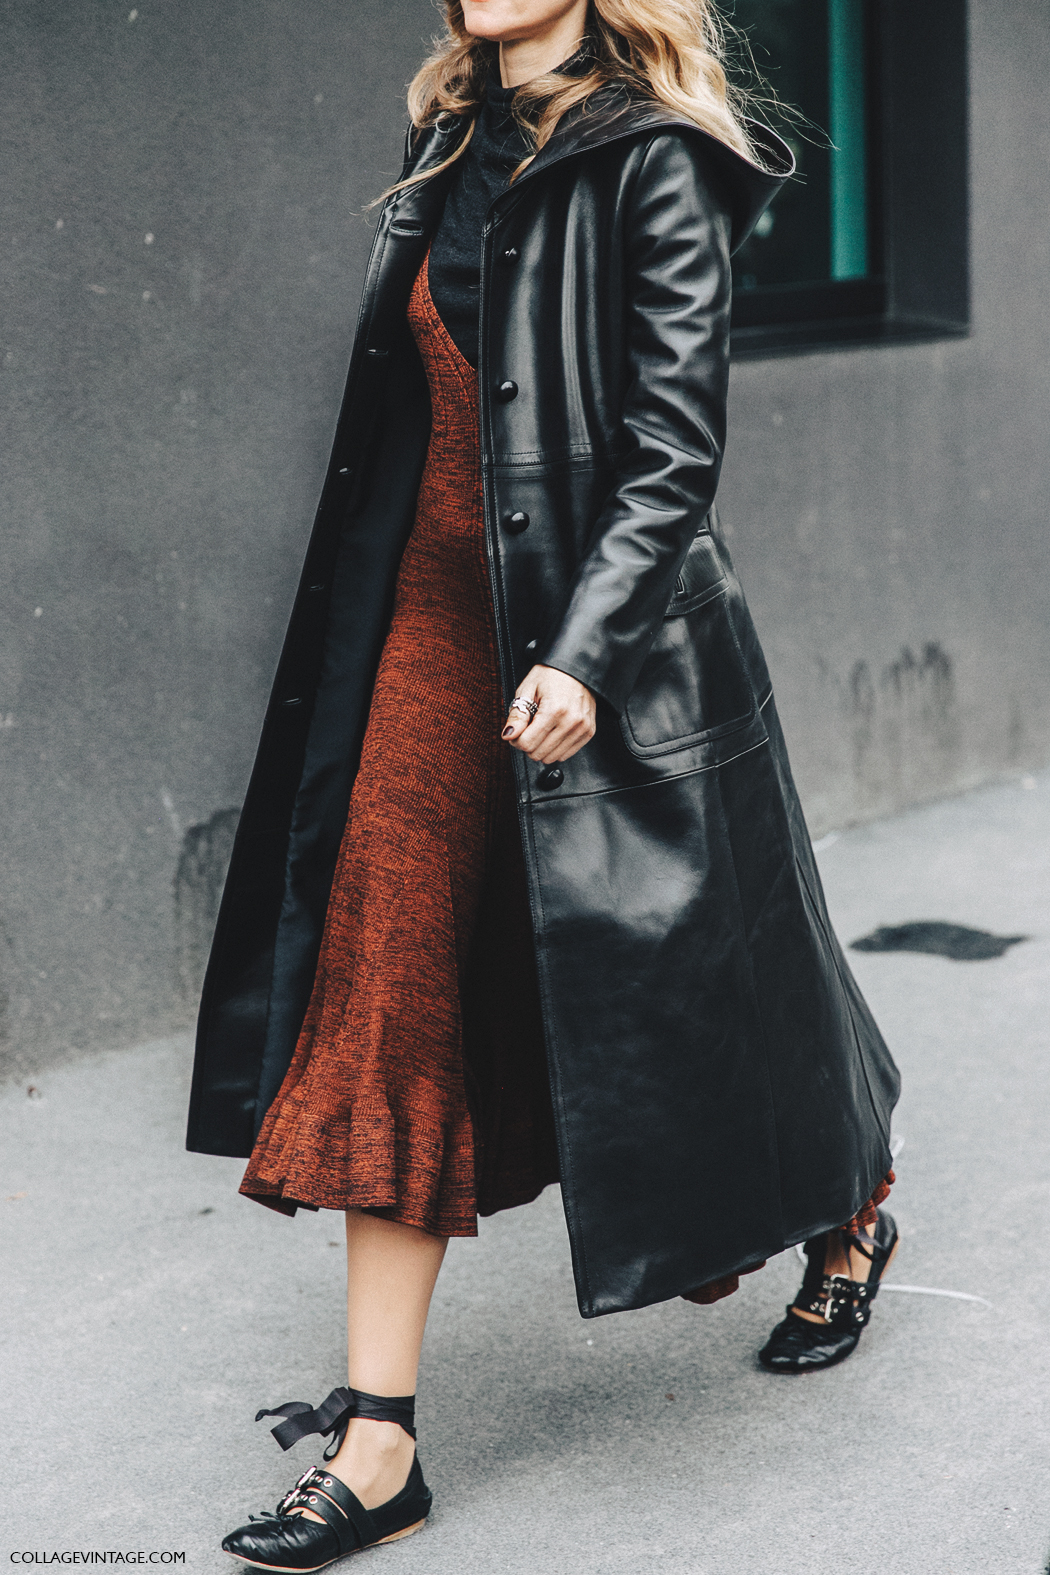 Milan_Fashion_Week_Fall_16-MFW-Street_Style-Collage_Vintage-Leather_Coat-Celine_Dress-Miu_Miu_Flats_Ballerinas-1